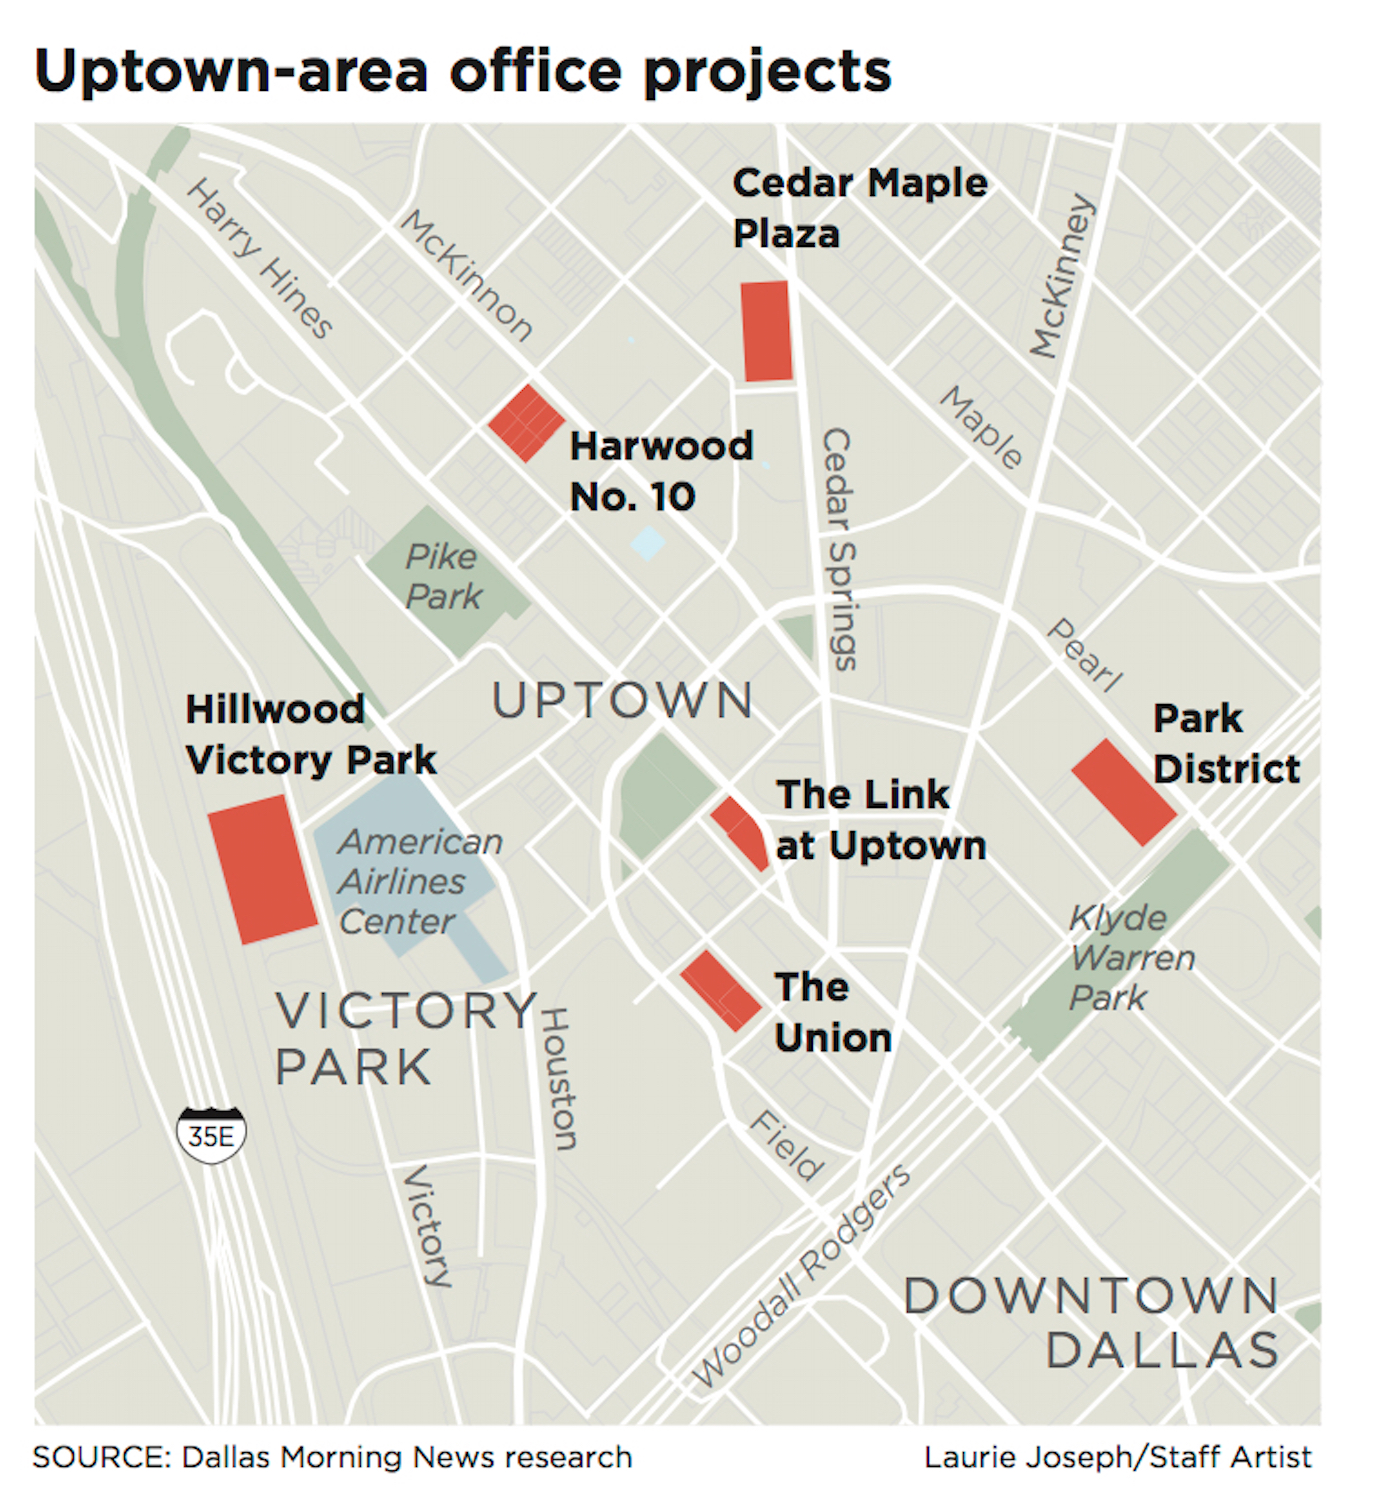 map of uptown dallas Uptown Dallas Developers Gear Up For The Next Round Of Office Building map of uptown dallas